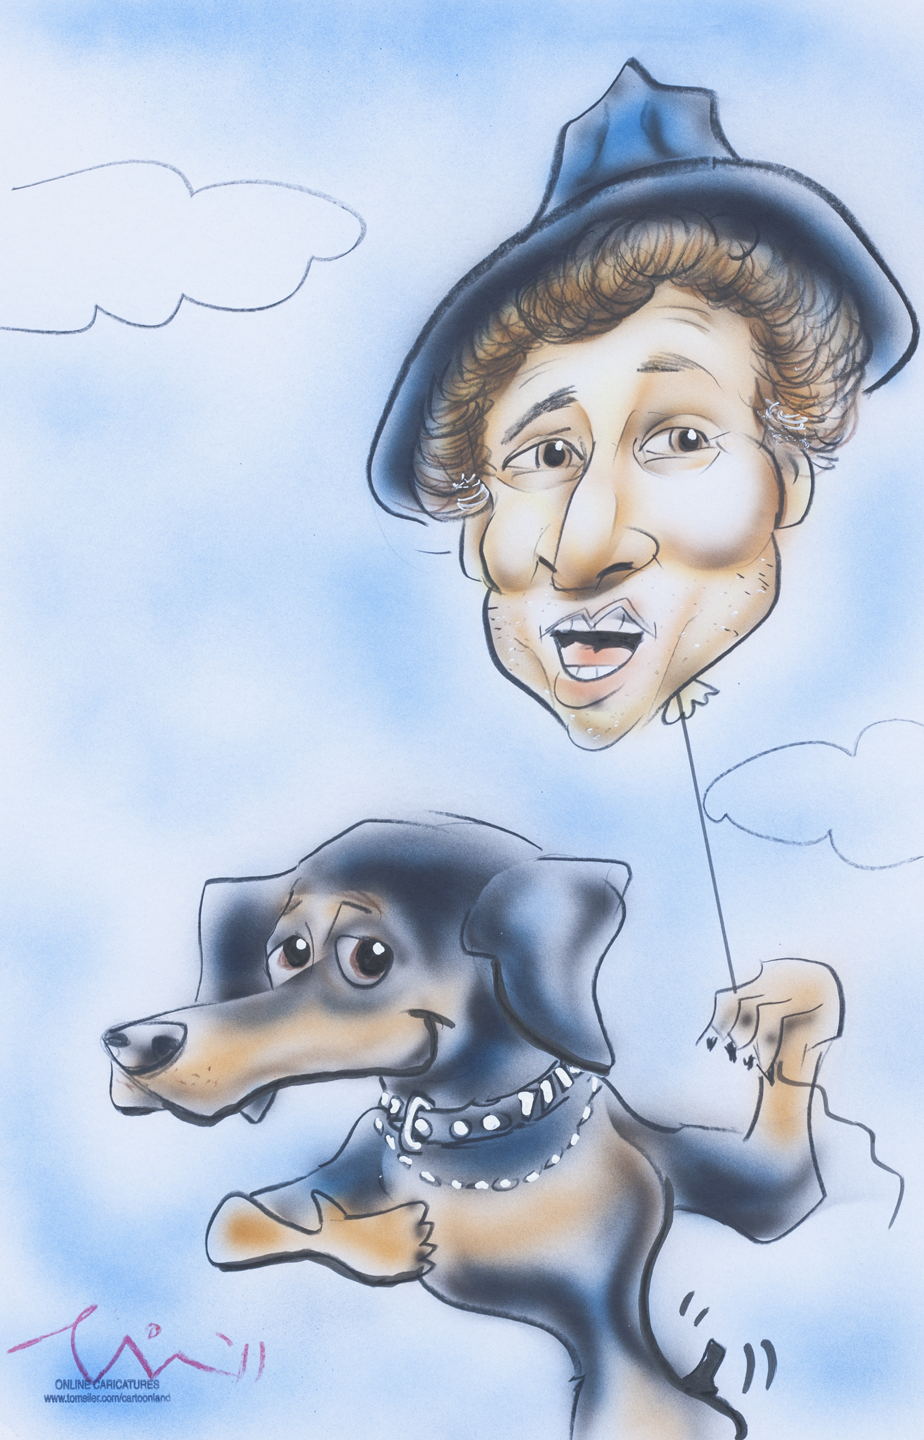 Ruby and Magic Marc / July 14, 2011 / 11 x 17 Airbrushed Caricature by Tom Siler